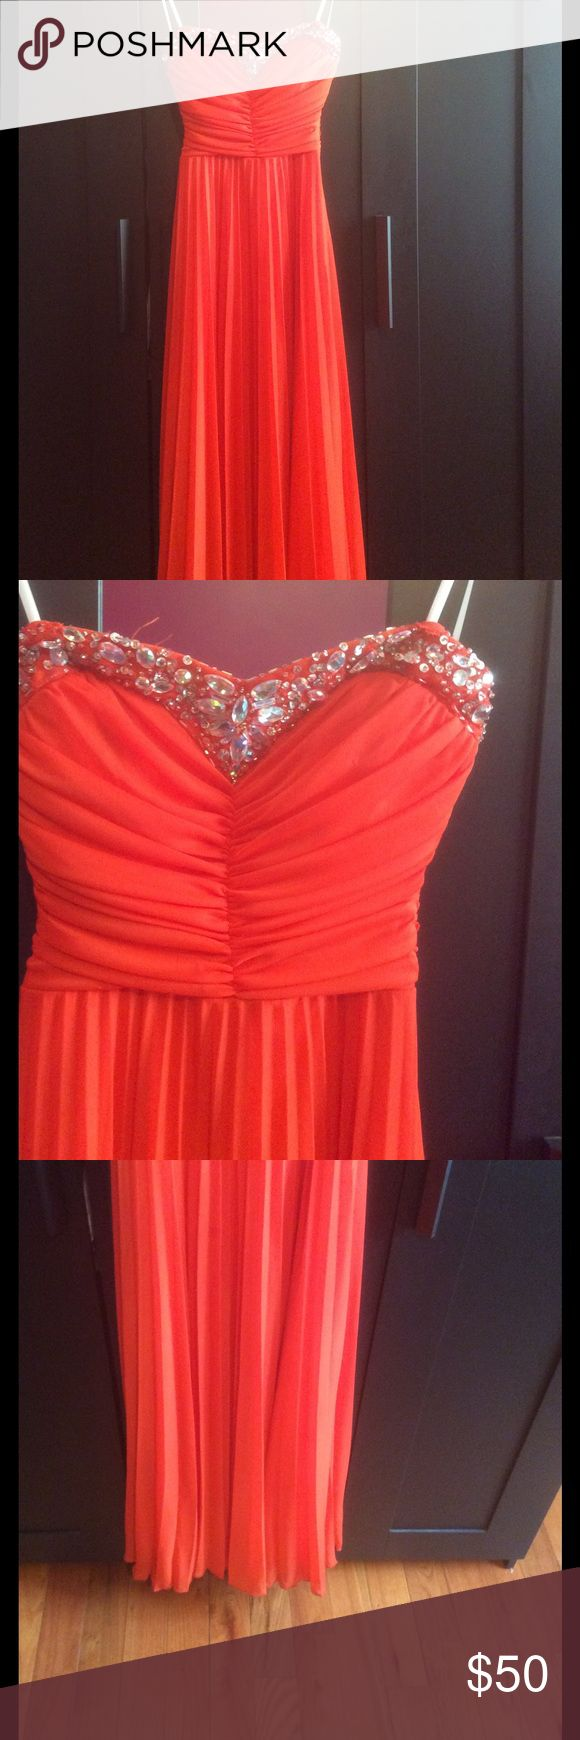 Prom Dress 🌹 Orange prom dress with diamond and glitter detail ✨ along the breast line Bust size : 32-34 Size: 3  Length: 162 in. There is a short slit along the dress as shown in the photo but is barely noticeable 💕 B Smart Dresses Prom